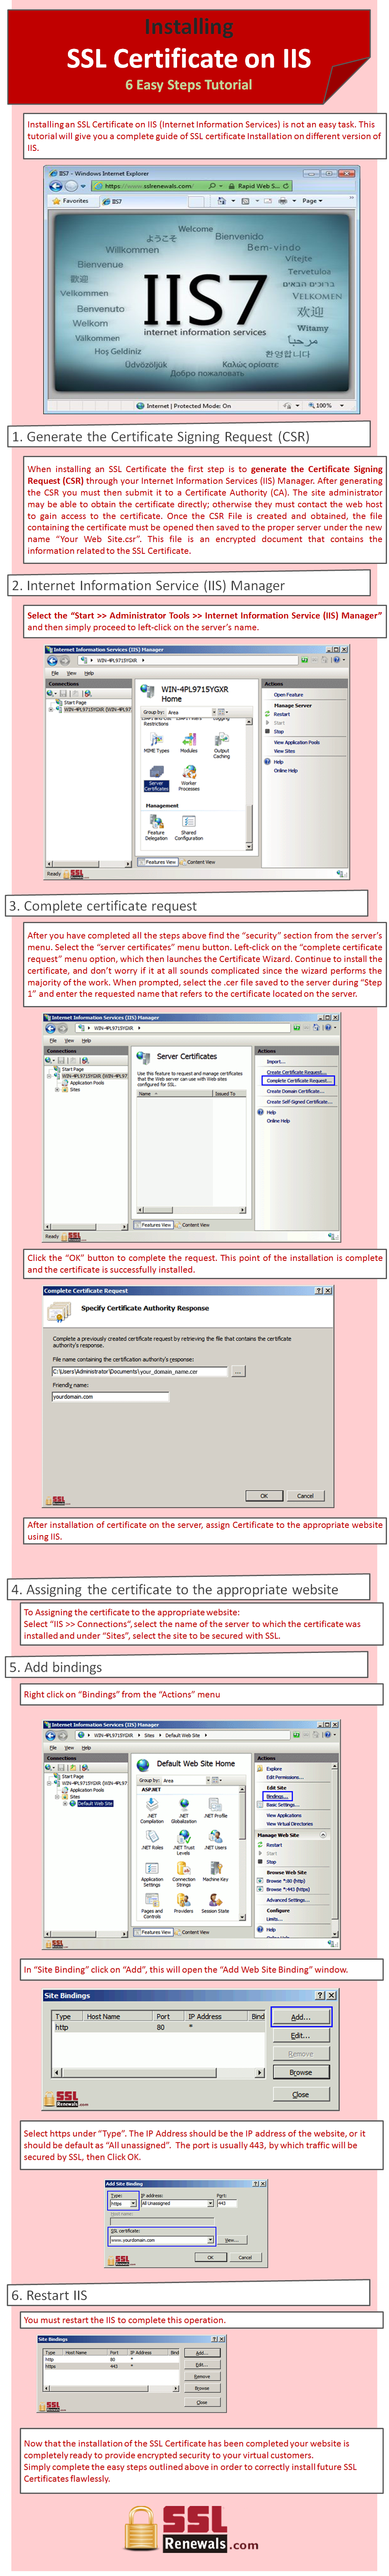 Installing an ssl certificate on iis 6 easy steps tutorial installing an ssl certificate on iis 6 easy steps tutorial infographic visual xflitez Image collections